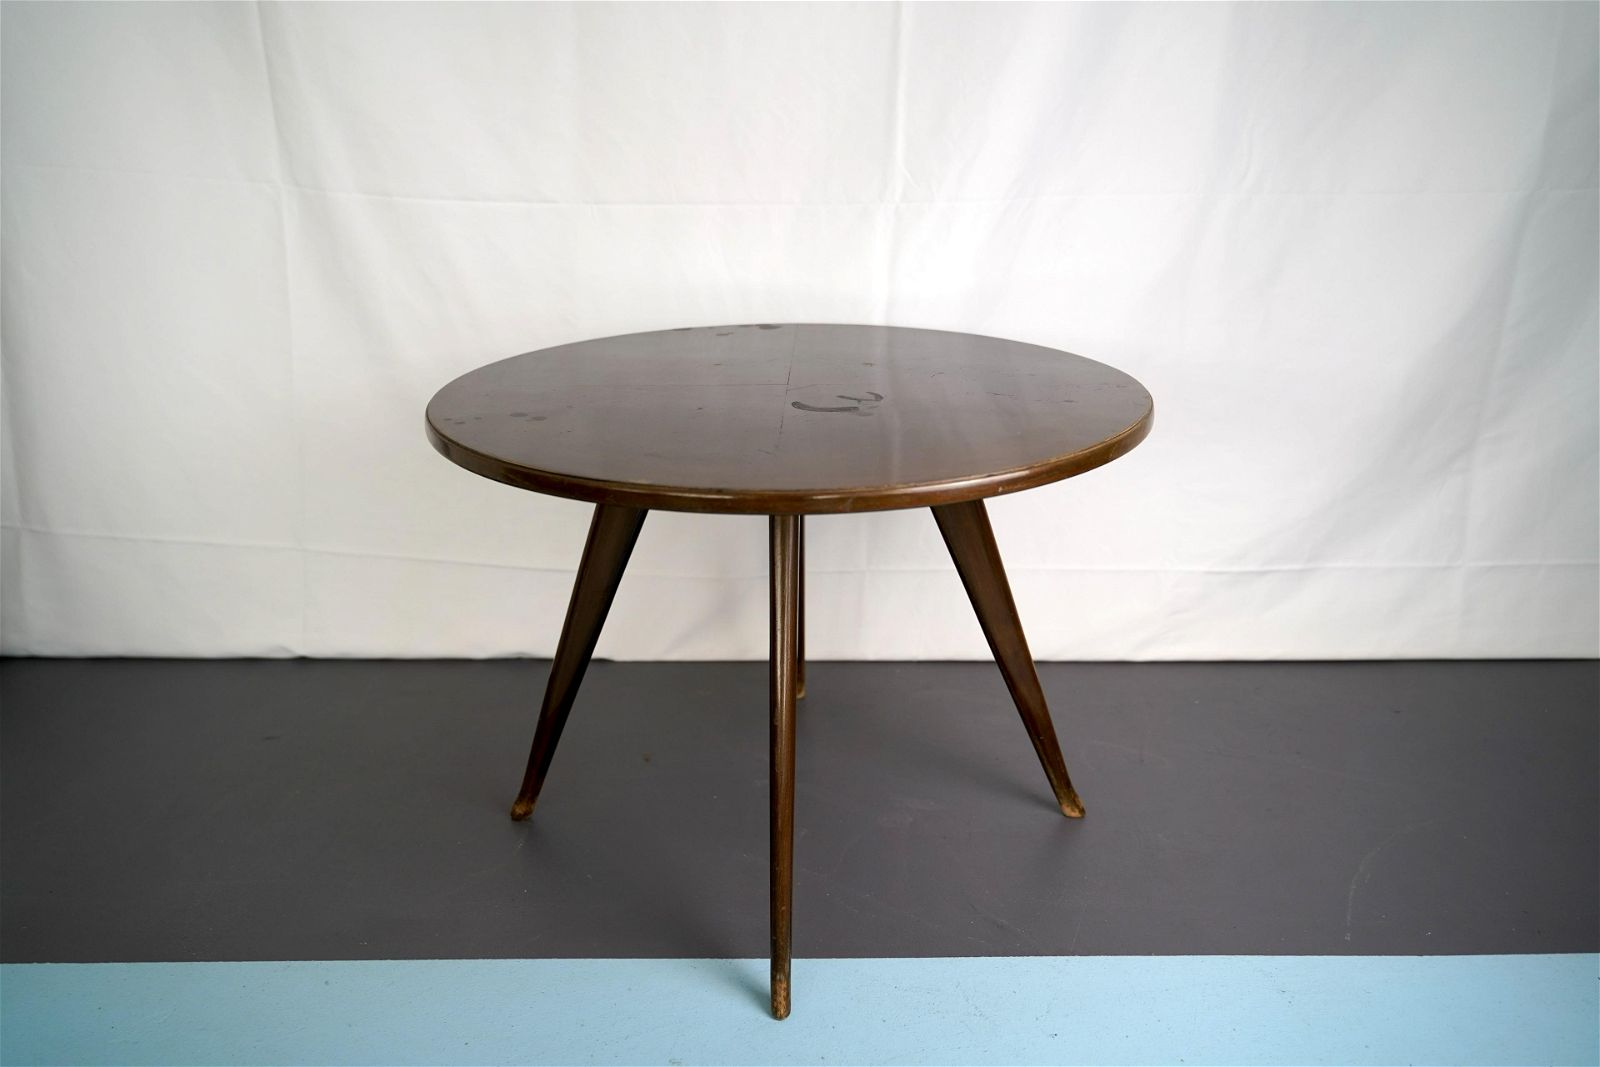 Vintage Italian mahogany round side table in the manner